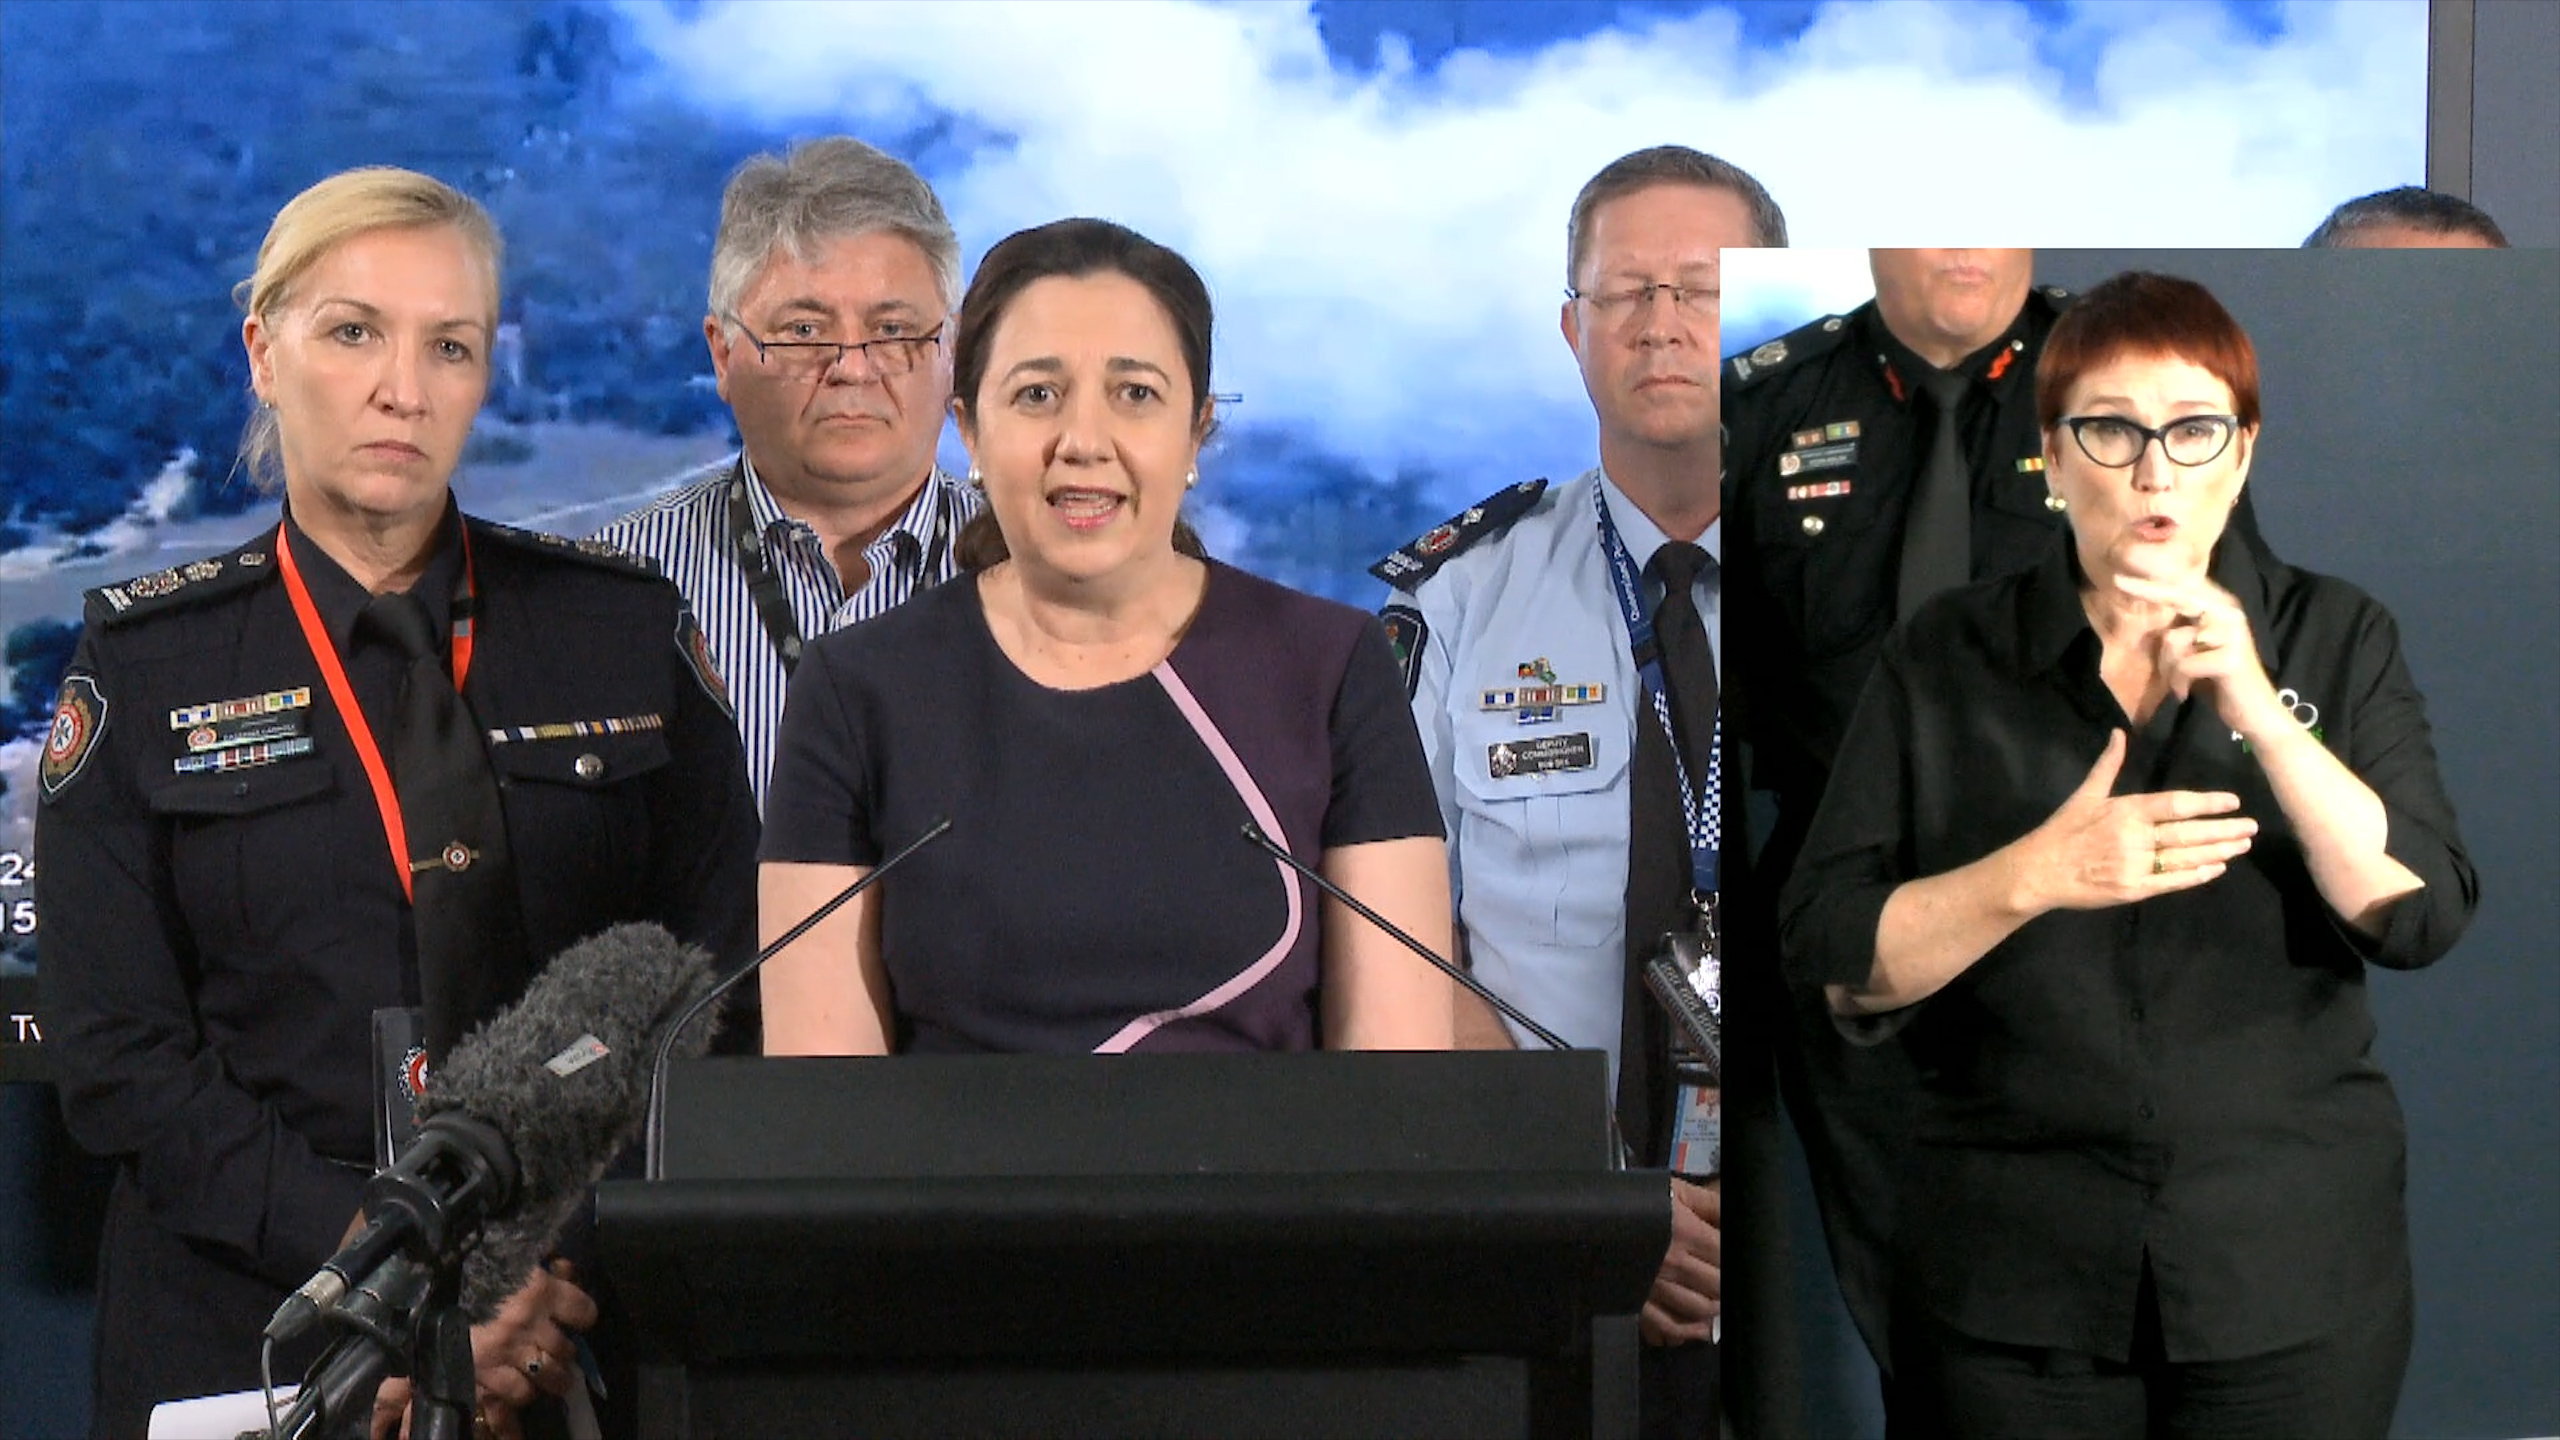 Evening Press Conference on the latest fire conditions for Queensland, December 2 2018.